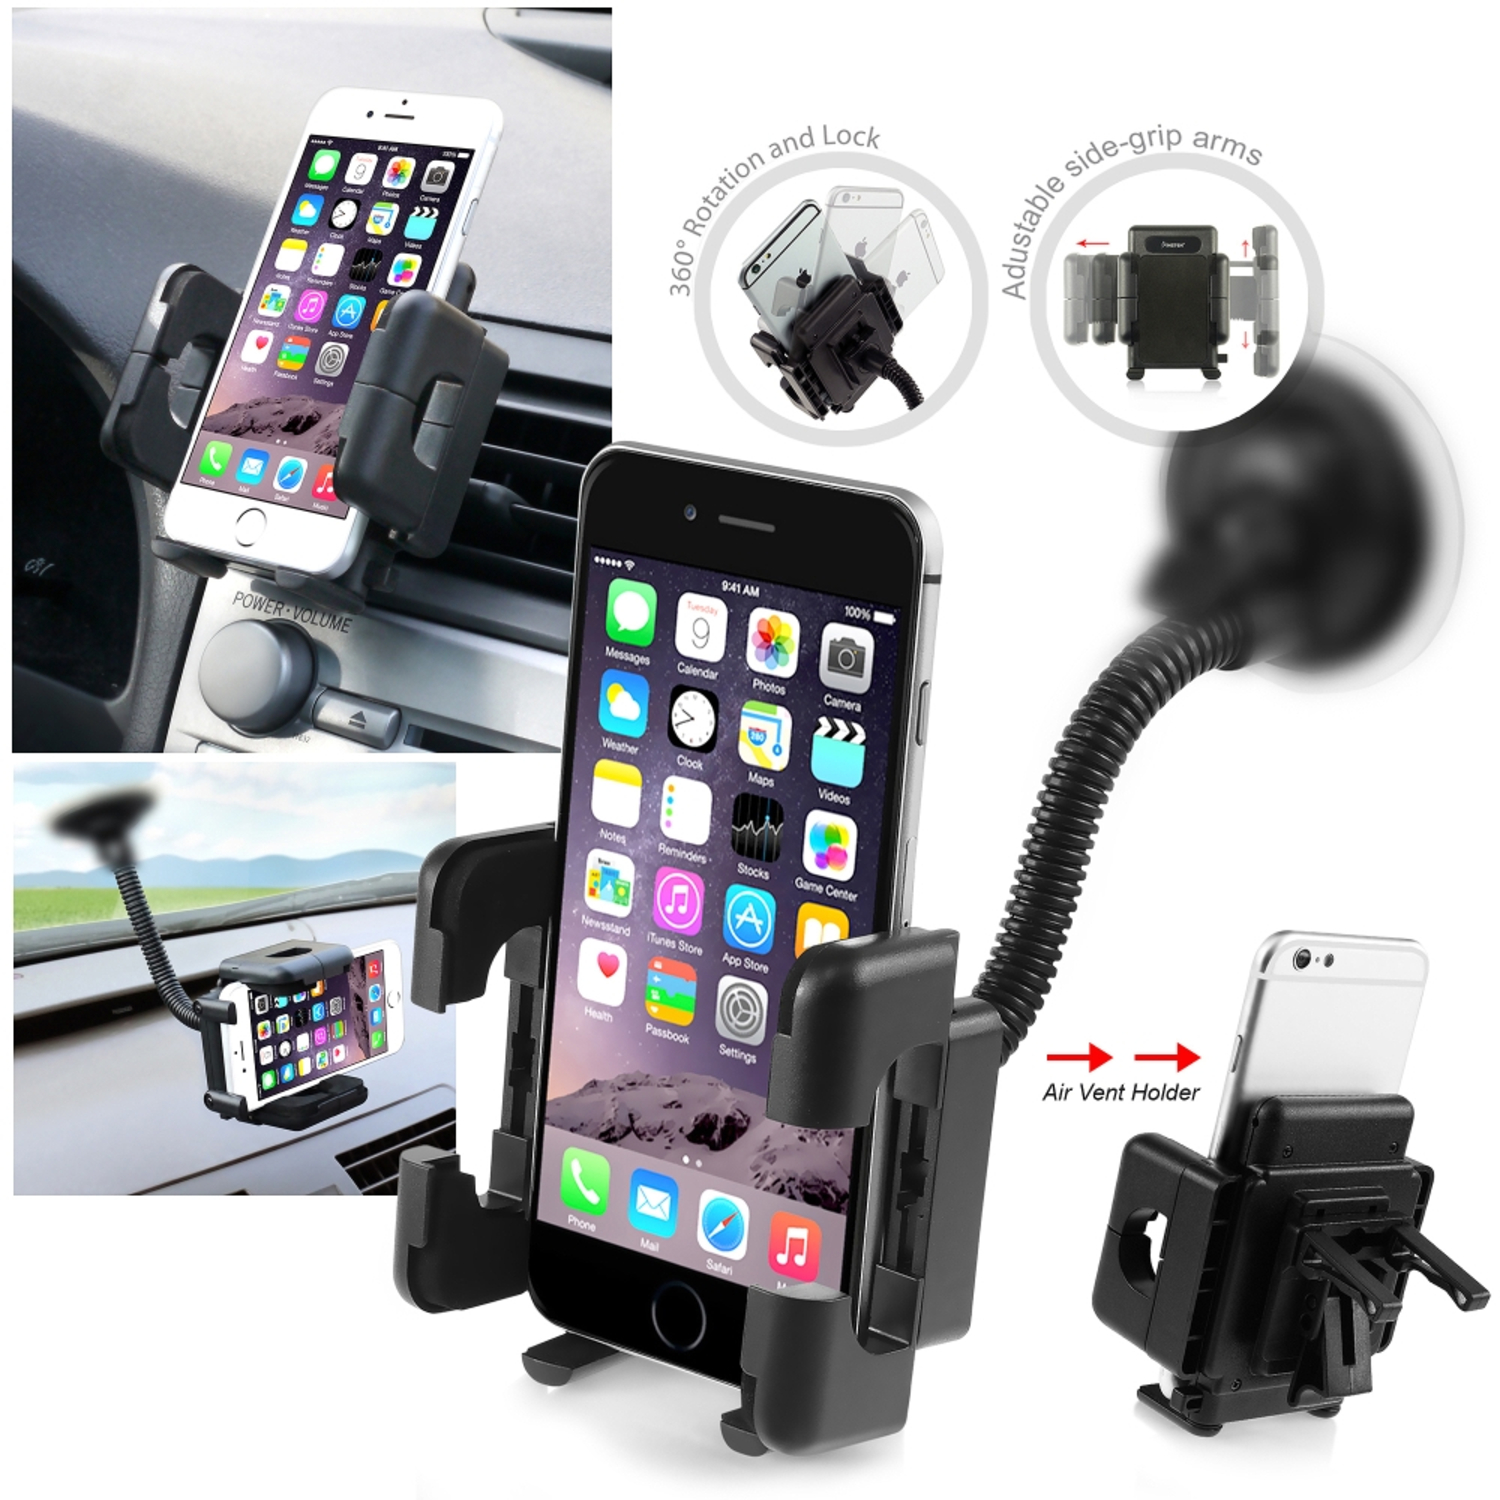 Insten Car Windshield Phone Holder Mount For iPhone 6 6+ 6S Plus 5S 5C 5 SE Samsung Galaxy S7 S6 Edge S5 S4 S3 Note 5 4 3 HTC M9 M8 Nexus LG G4 G Stylo Leon GPS PDA Bracket (Width: 1.75 to 4.3 inches)